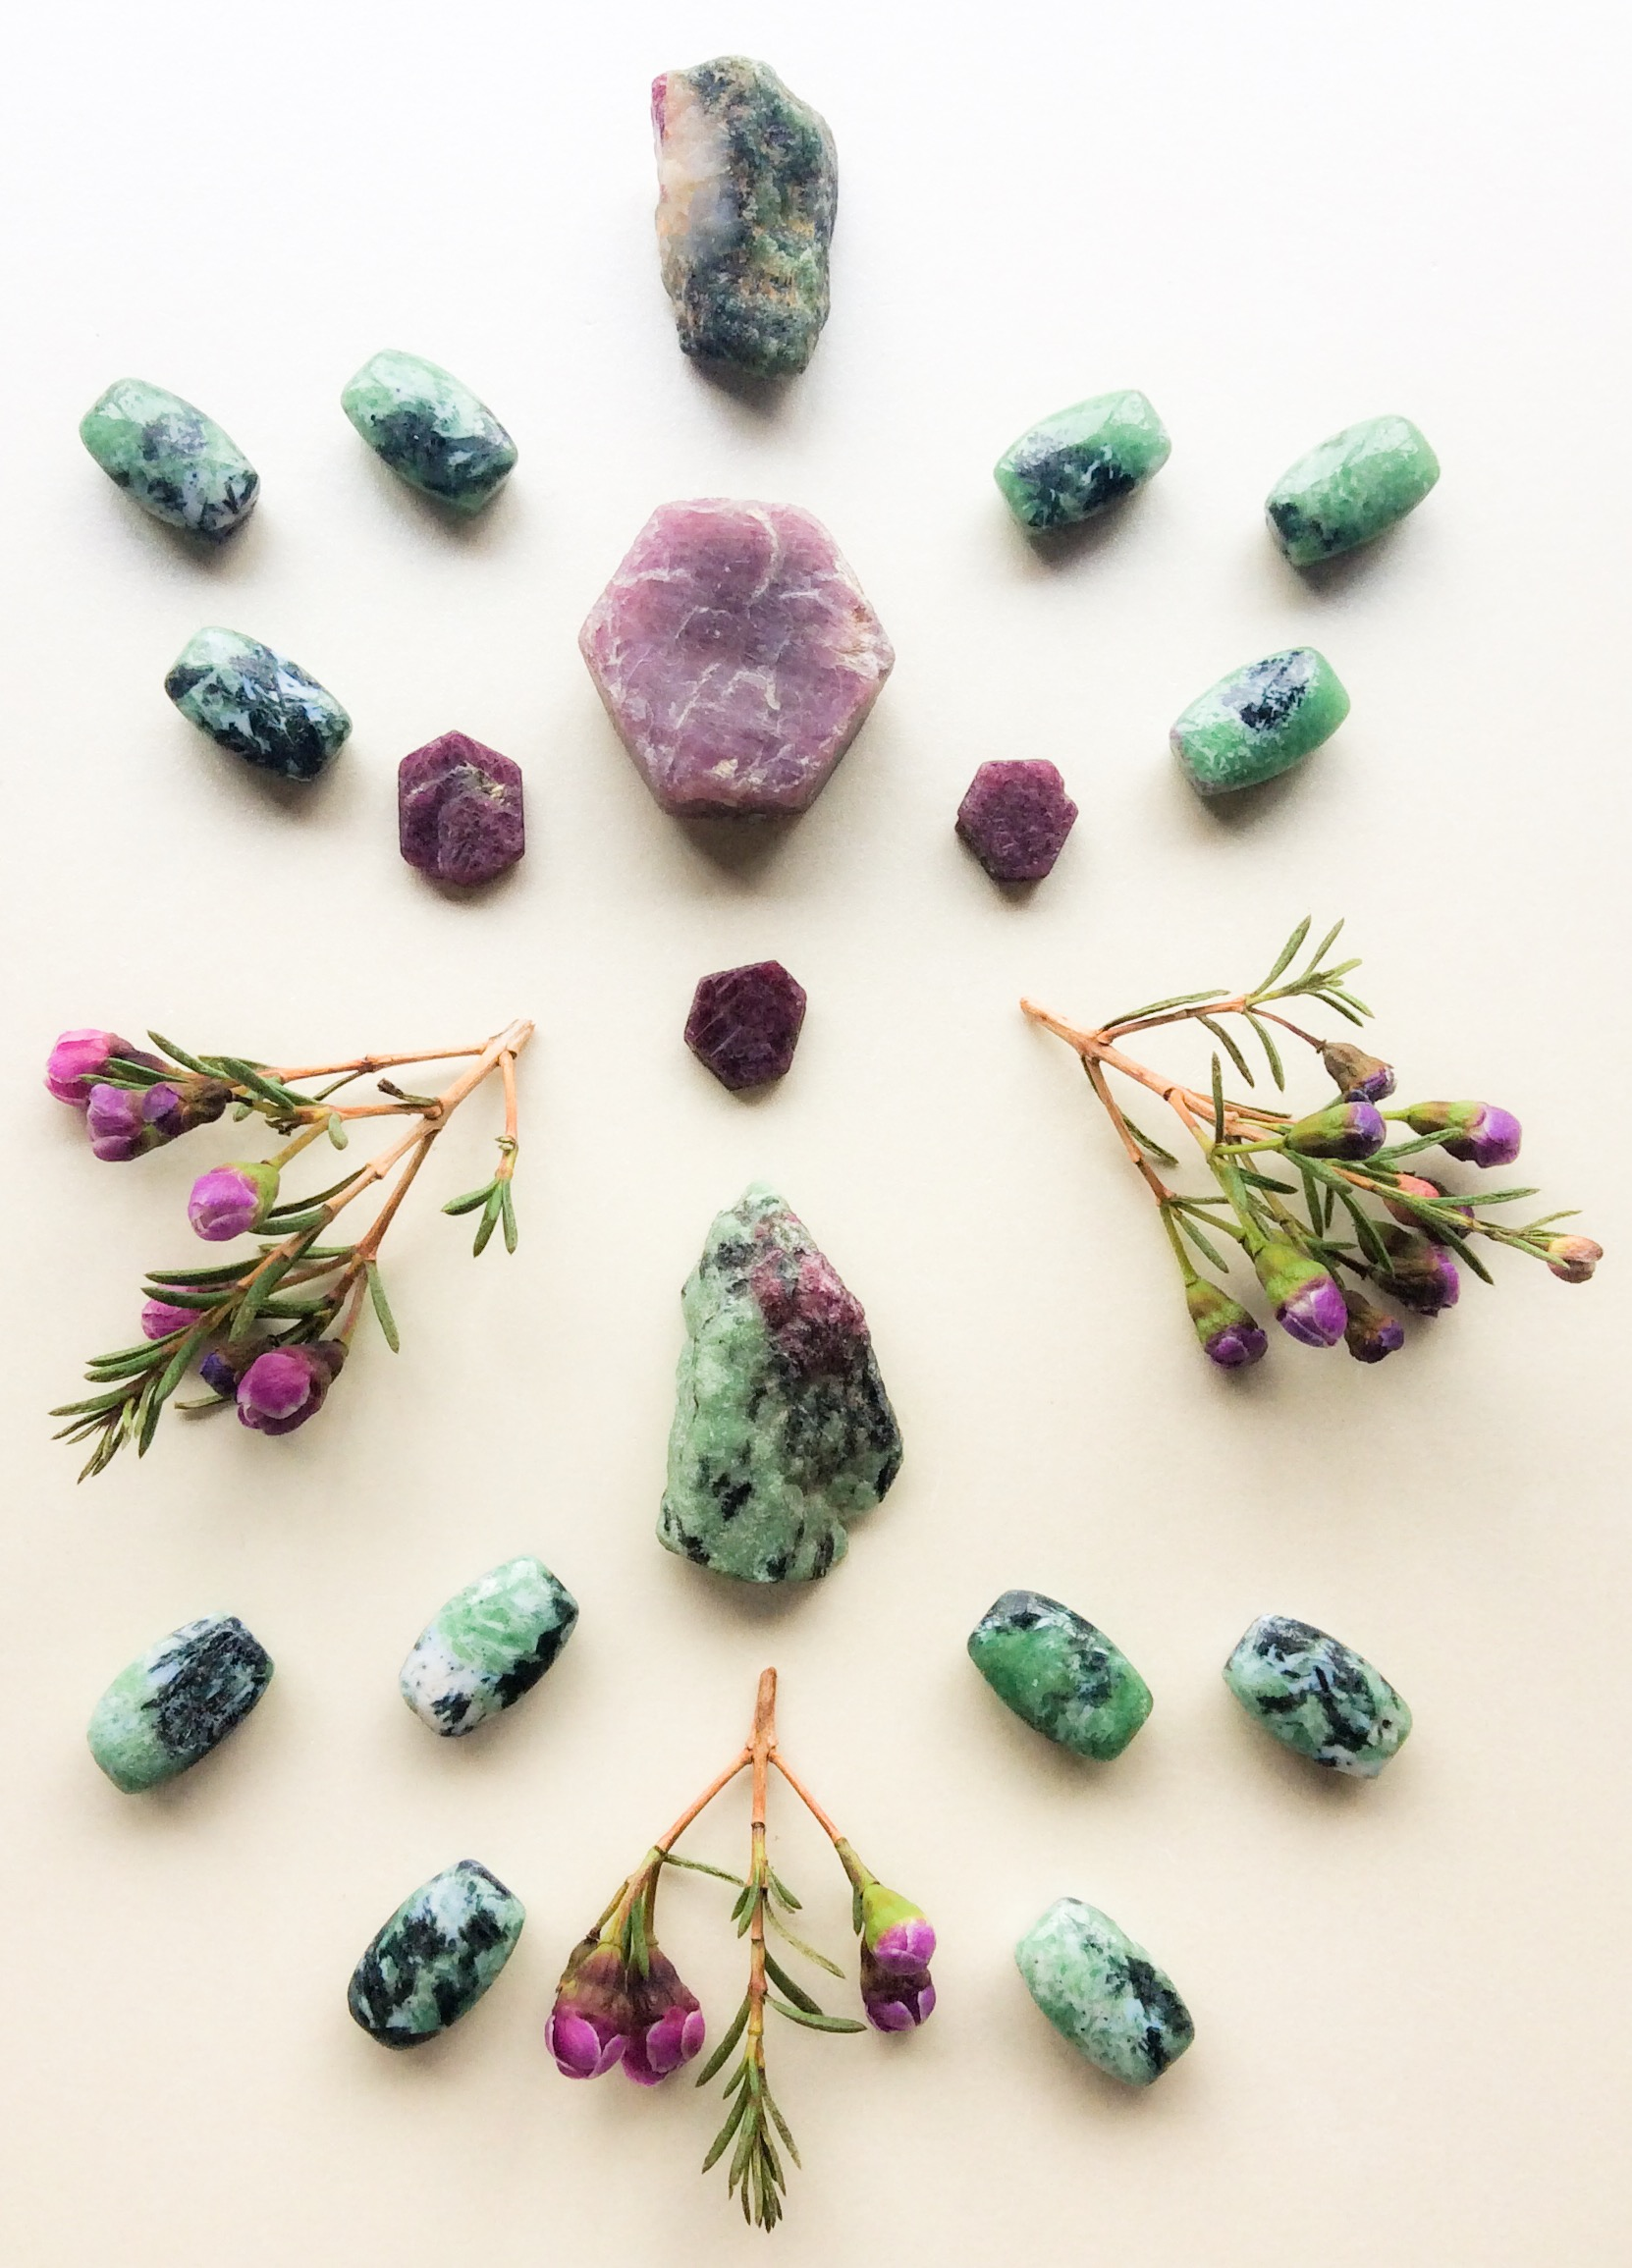 Ruby, Ruby in Zoisite, Zoisite and Wax flowers